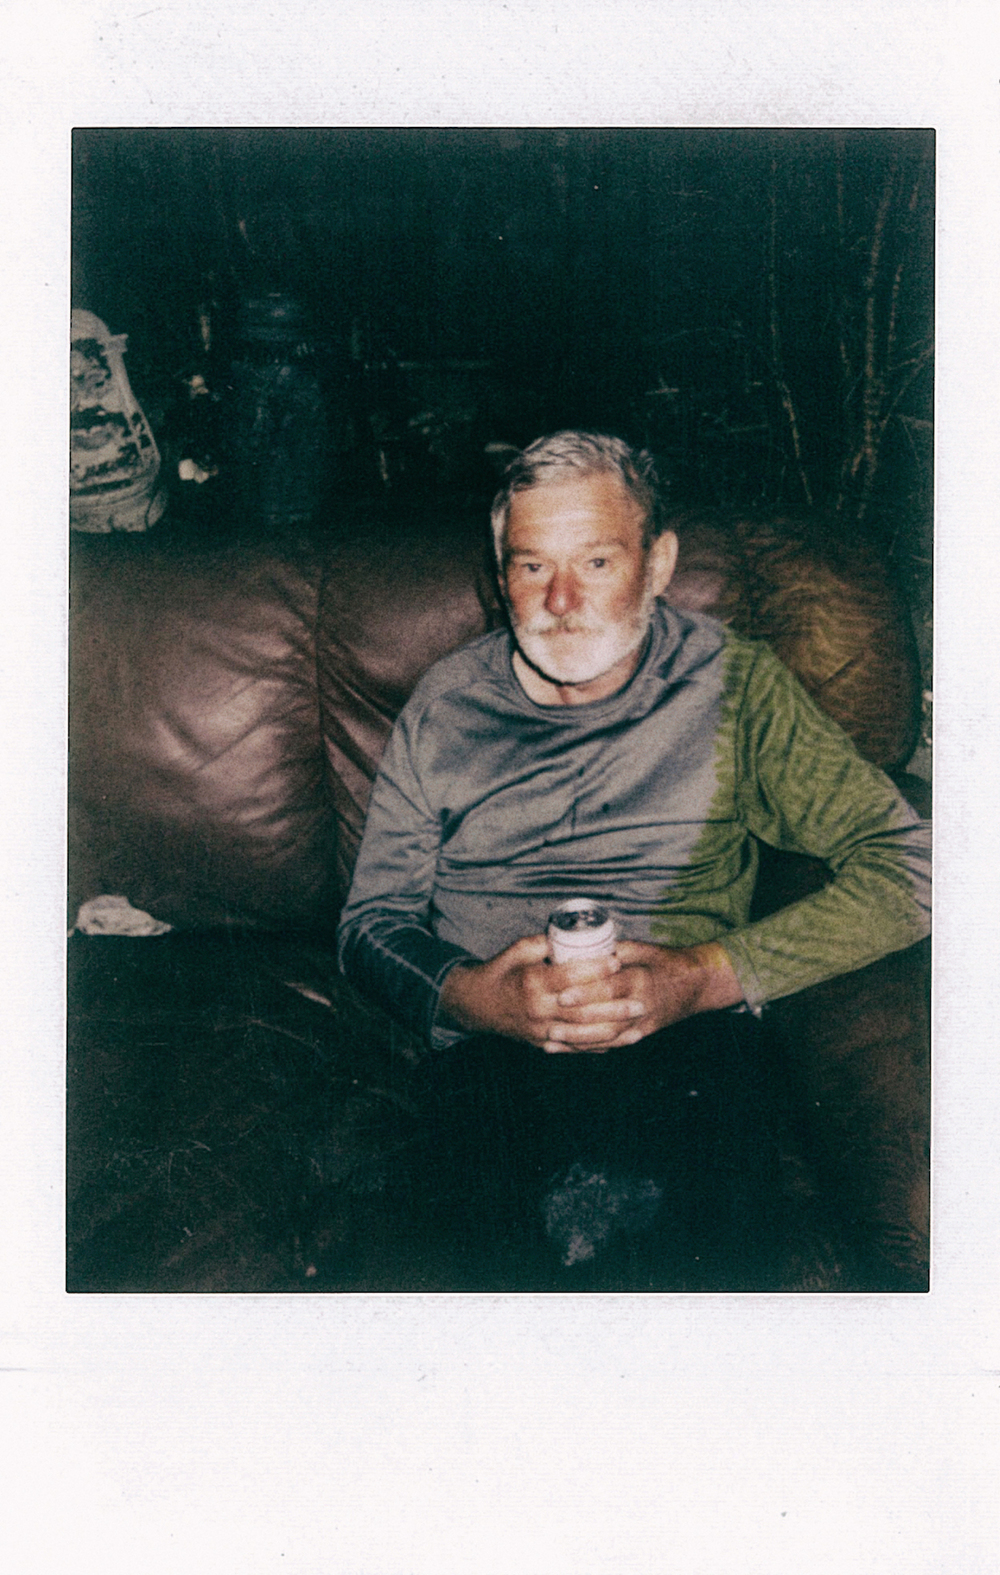 This is Richard. Drinking complications has lead to Richard being incontinent, meaning, he cannot hold in his drink. I gave him this polaroid, but found it a few days later in the couch with the yellow stain across his sleeve...someone had spilt their drink on it.